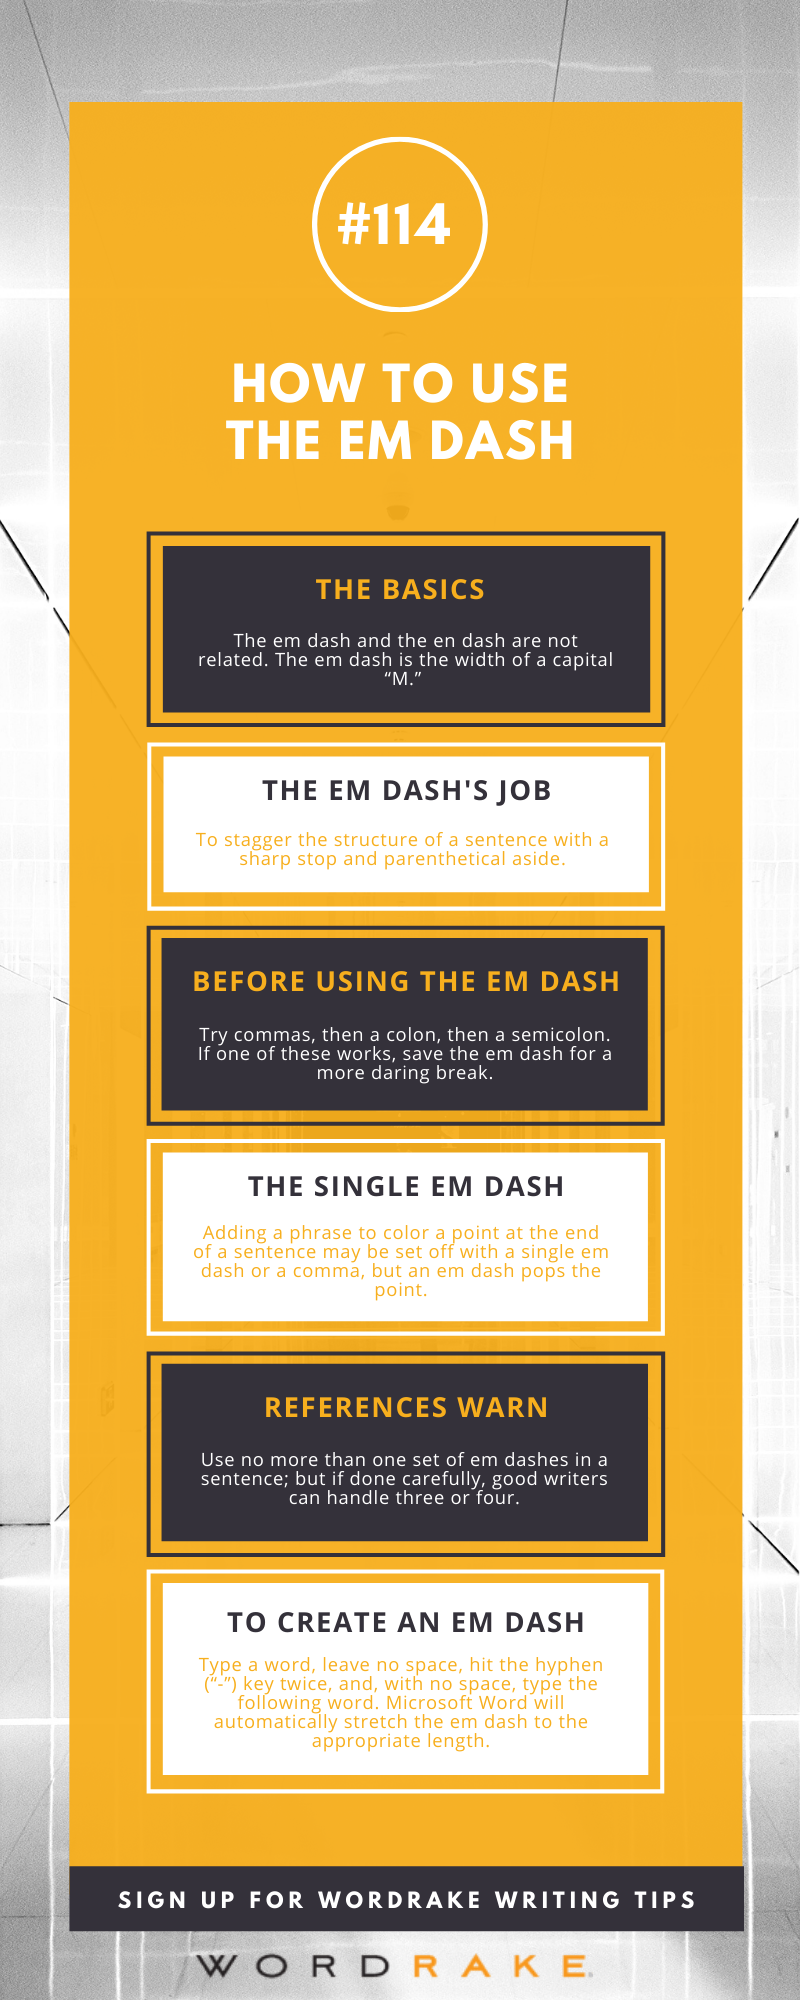 WT 114 - How to Use the Em Dash (Long)